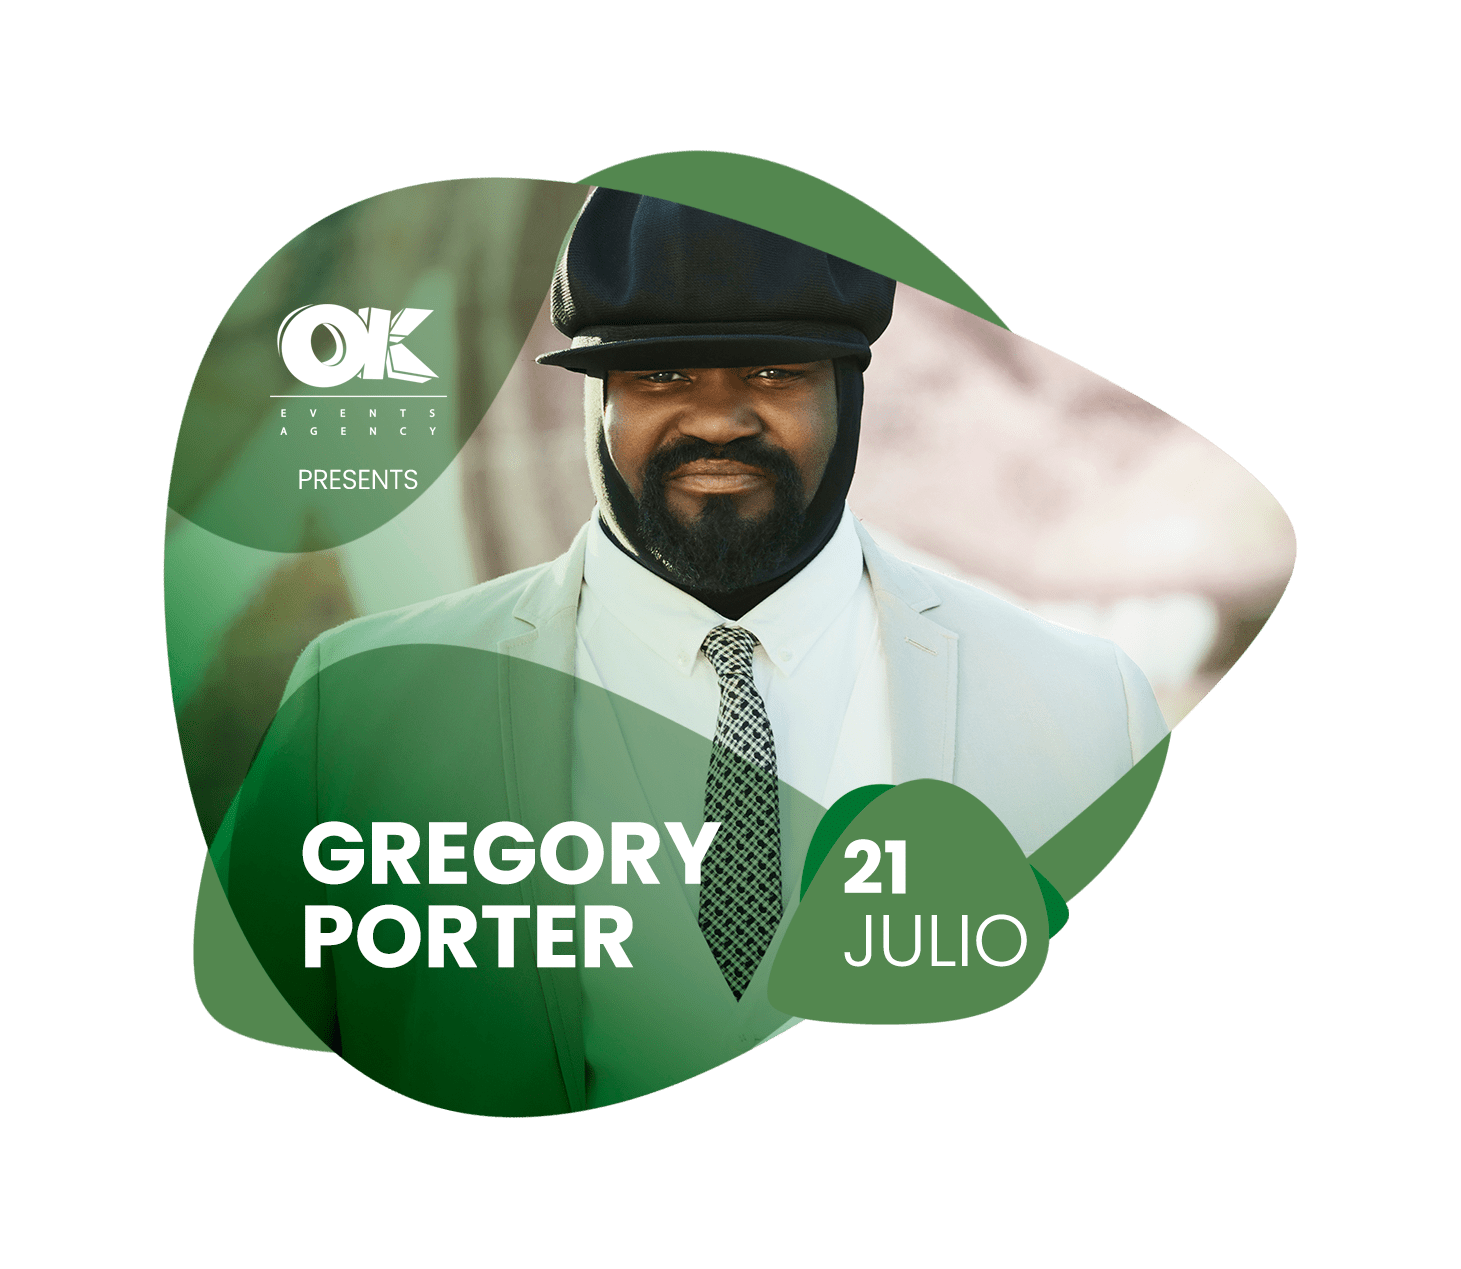 https://portadriano.com/musicfestival/wp-content/uploads/2019/05/GREGORY.png